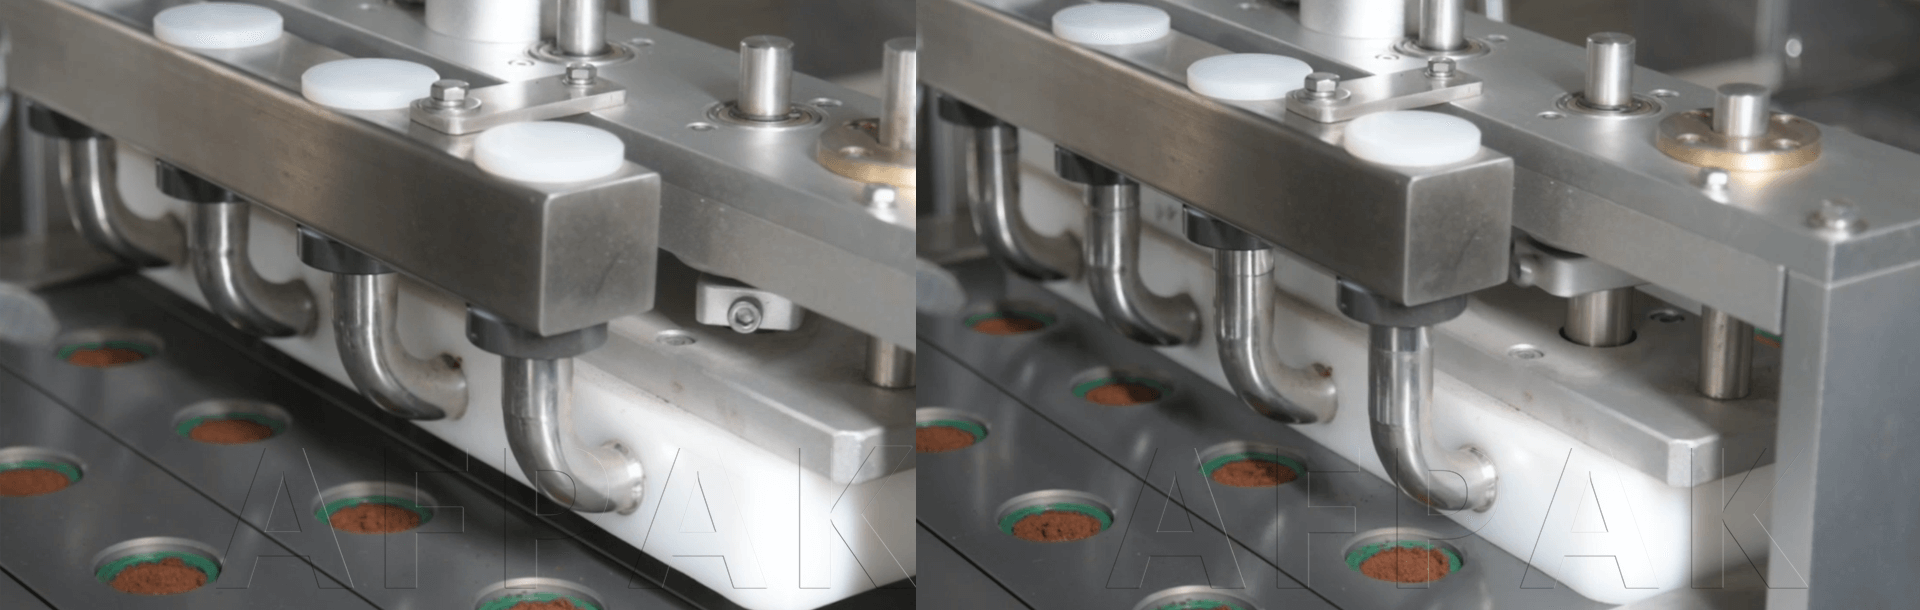 clean-the-capsules-edge-of-coffee-capsule-packing-machine